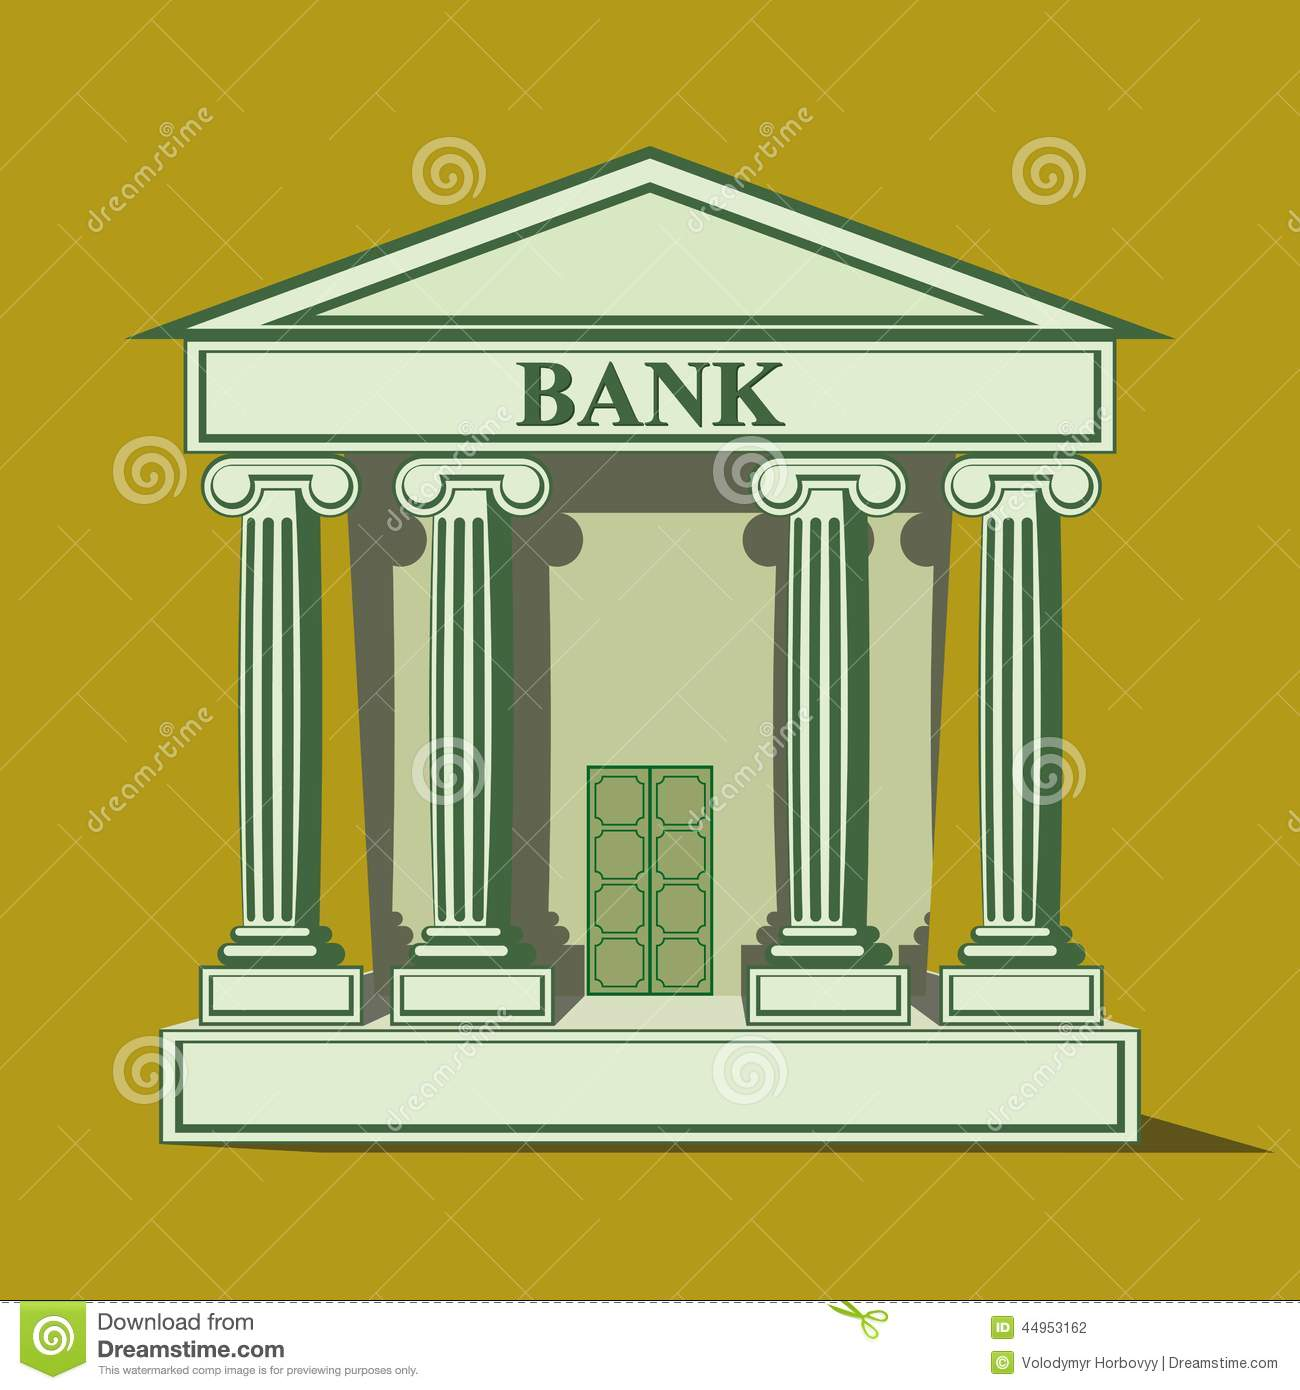 Bank icon clipart banner freeuse library Flat Bank Icon. Stock Vector - Image: 44953162 banner freeuse library